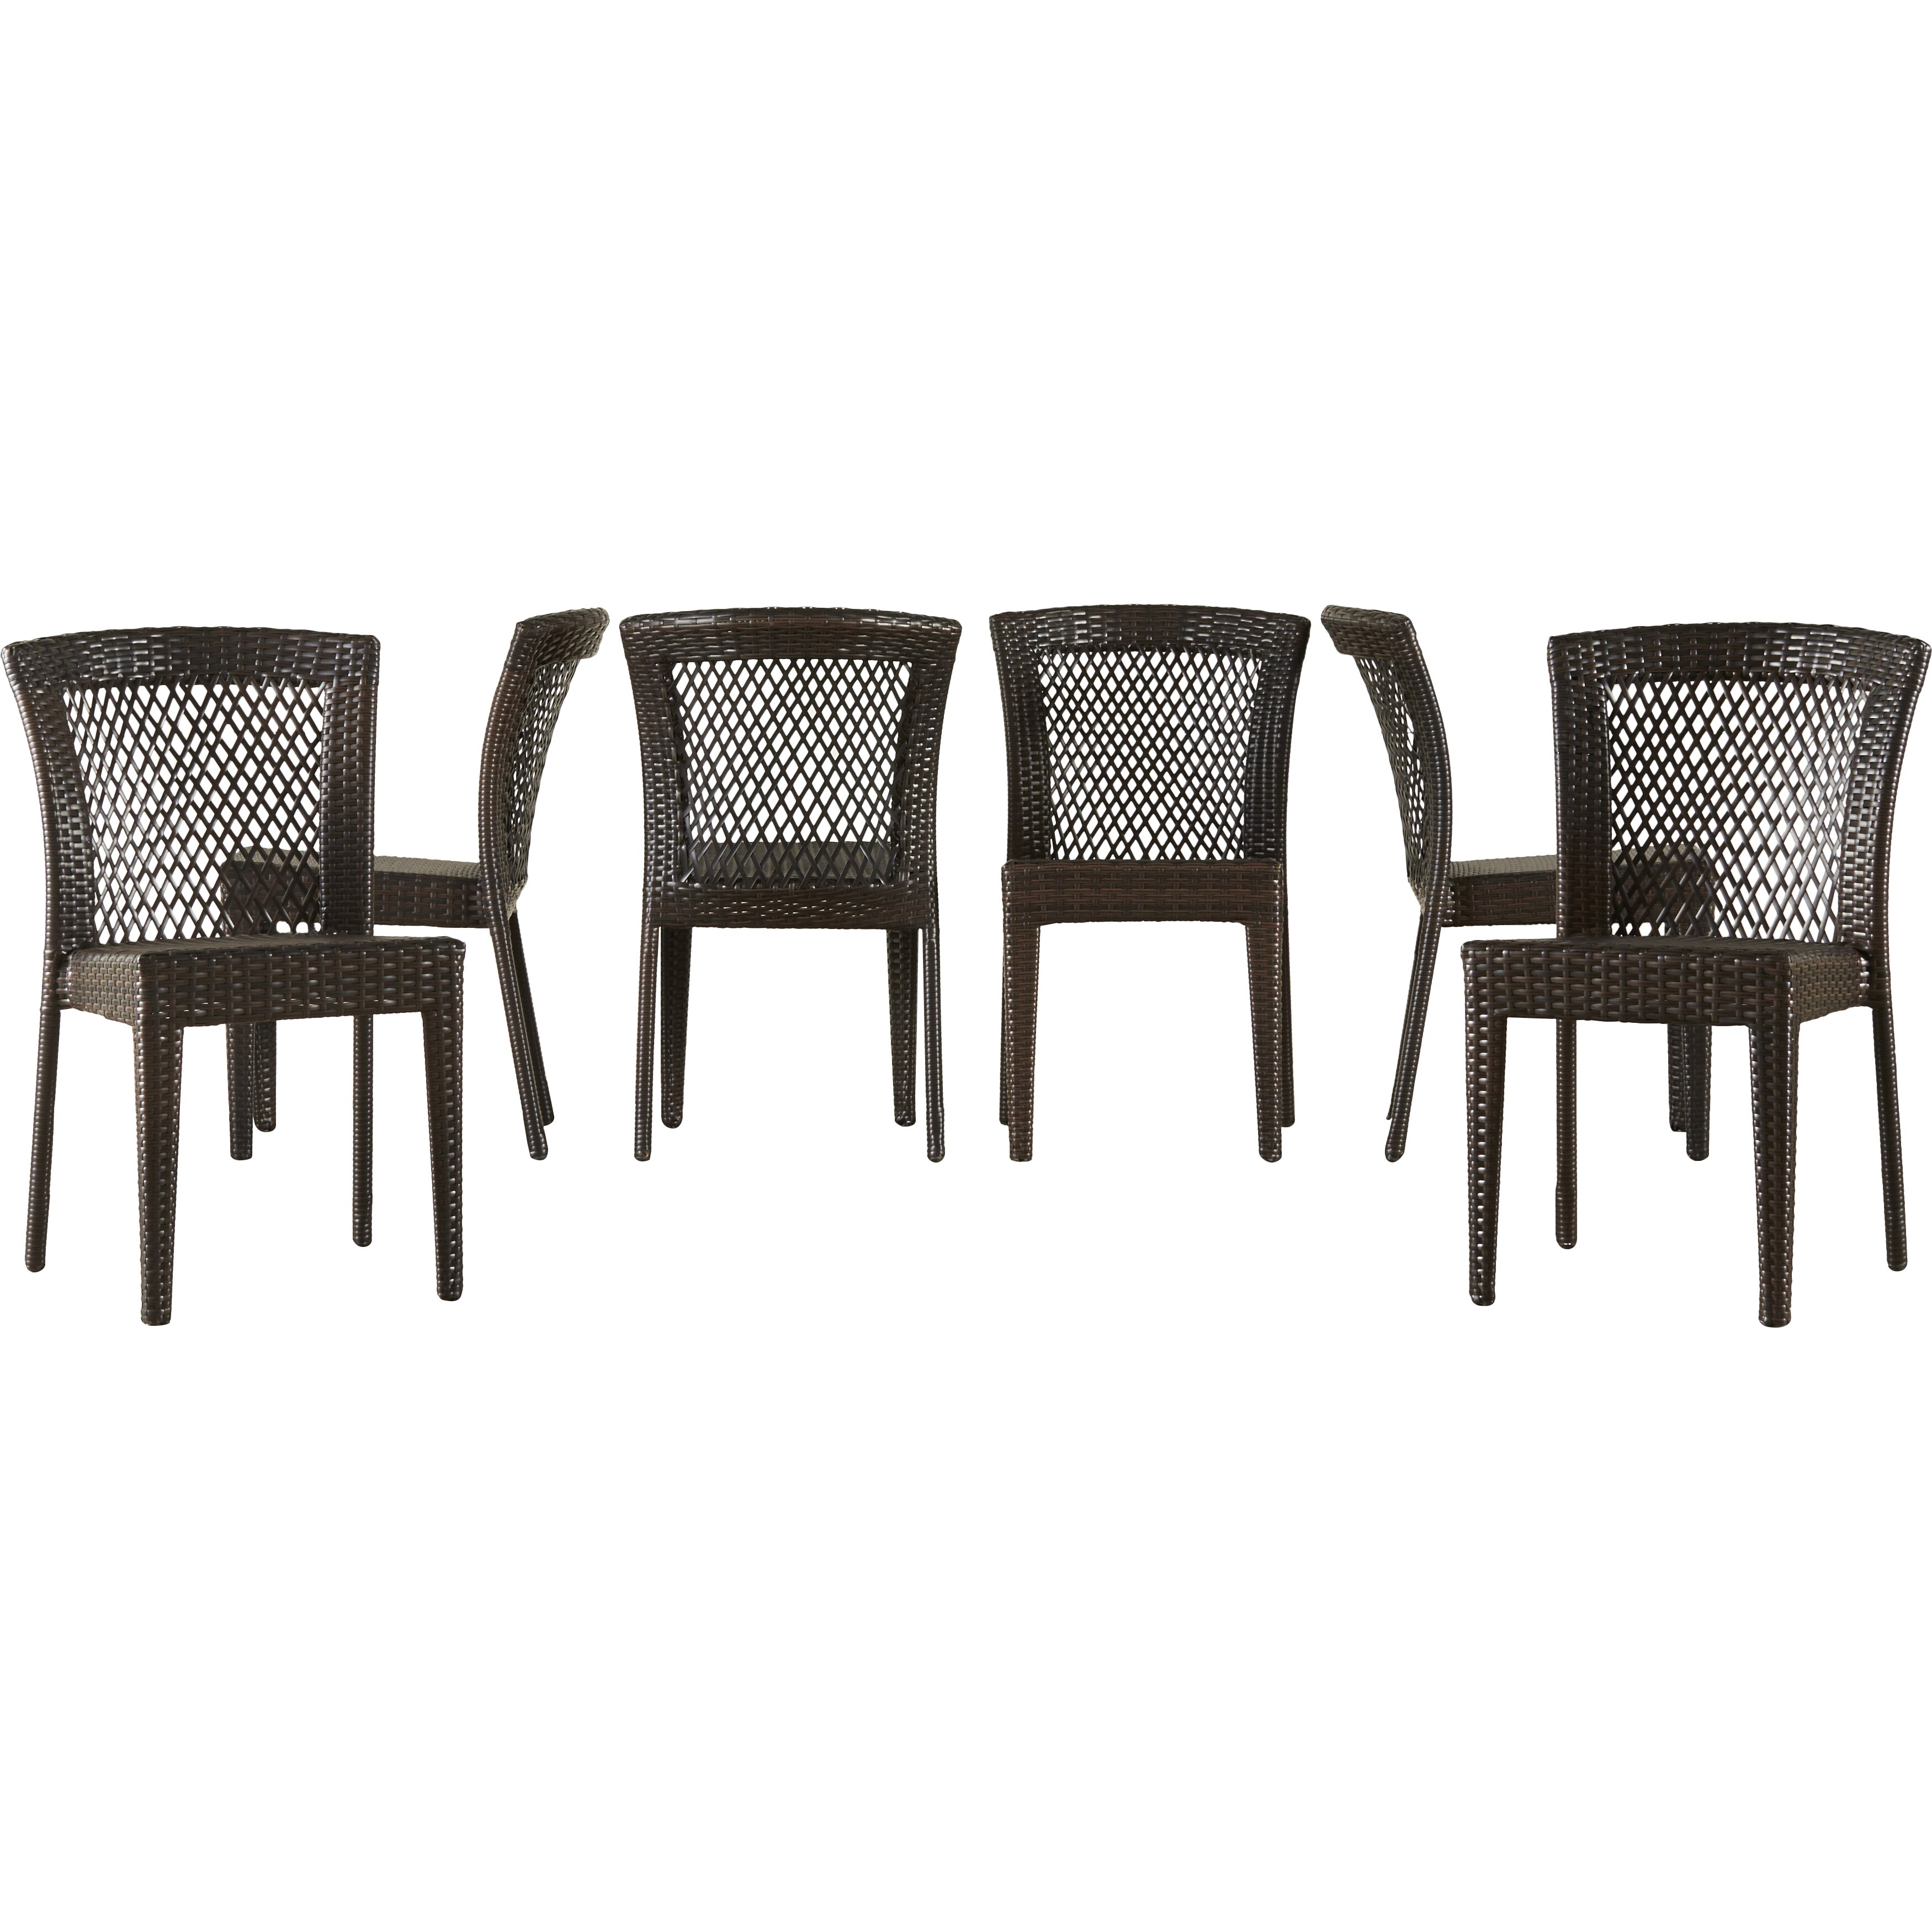 Brayden Studio Bautista 7 Piece Outdoor Dining Set Reviews Wayfair